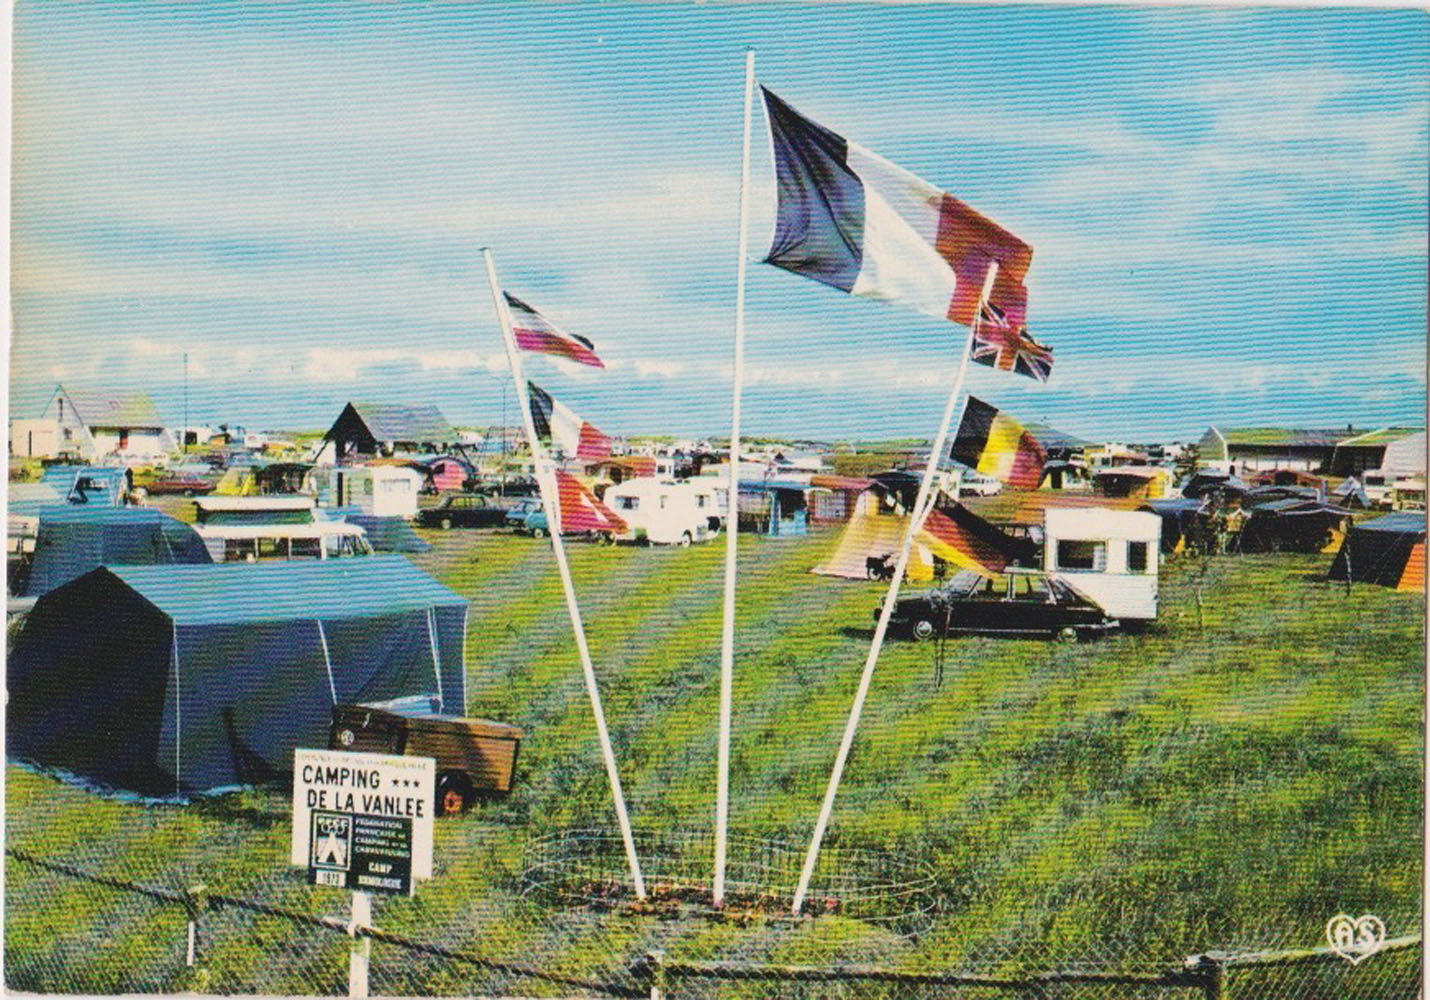 1970 St Martin Sites Camping Vanlée © collection Jean Claude Ferret